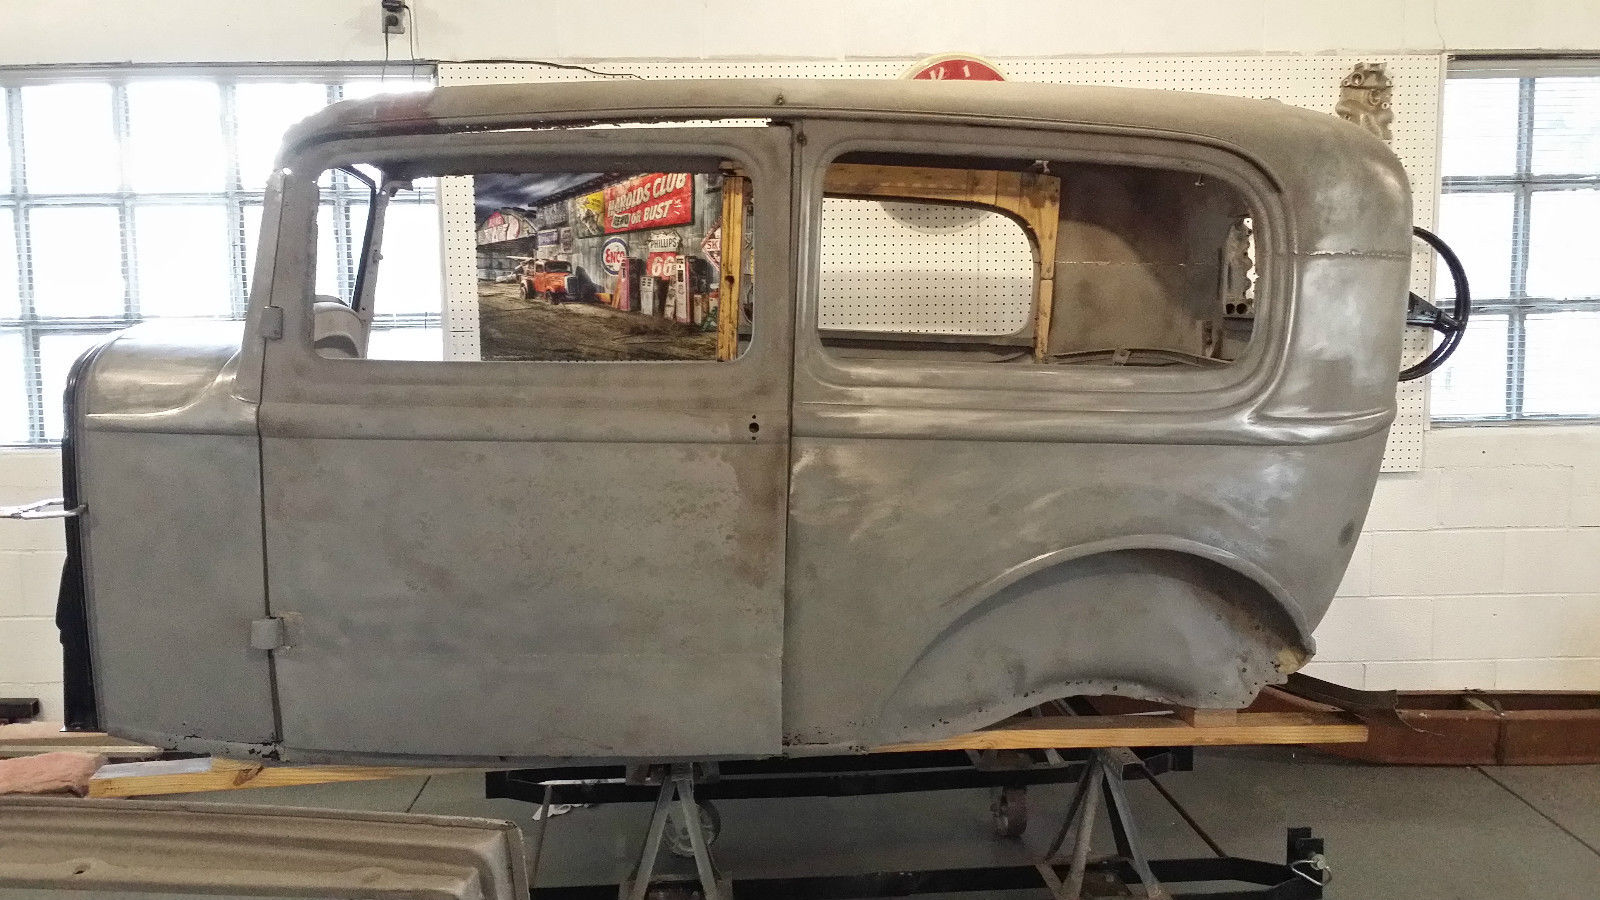 1932 FORD TUDOR BODY - Classic Ford Other 1932 for sale